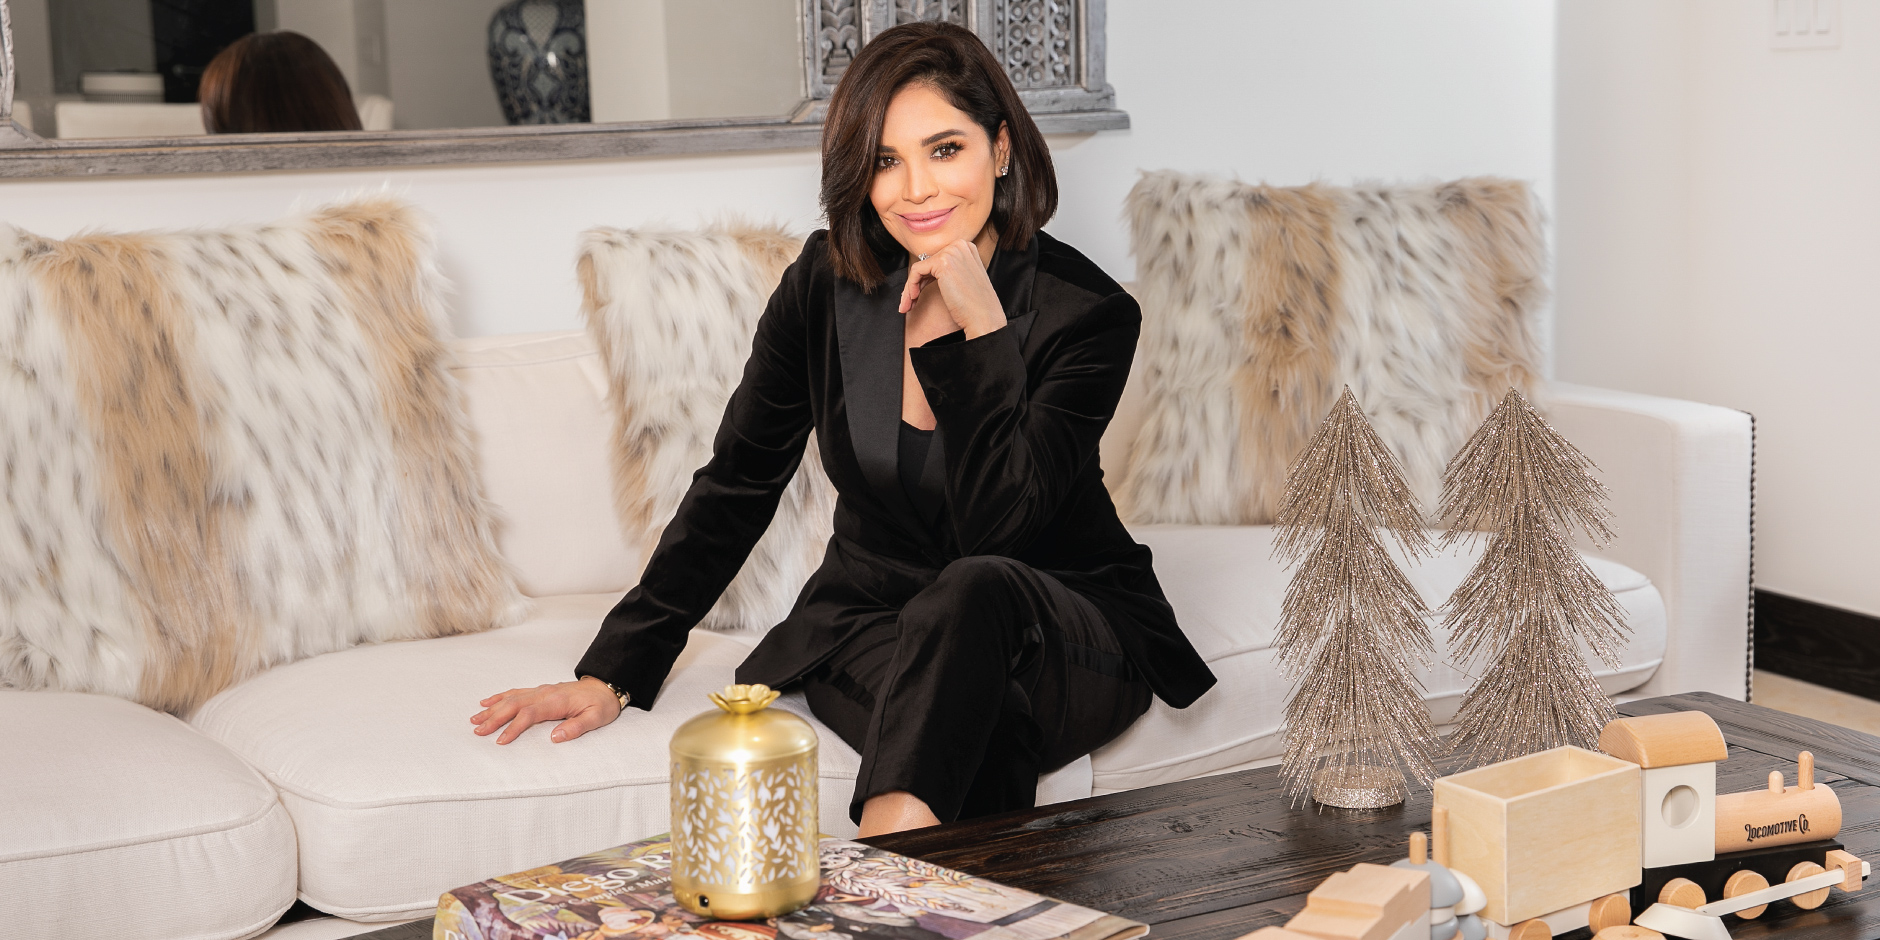 Karla Martinez smiles in an elegant living room scene